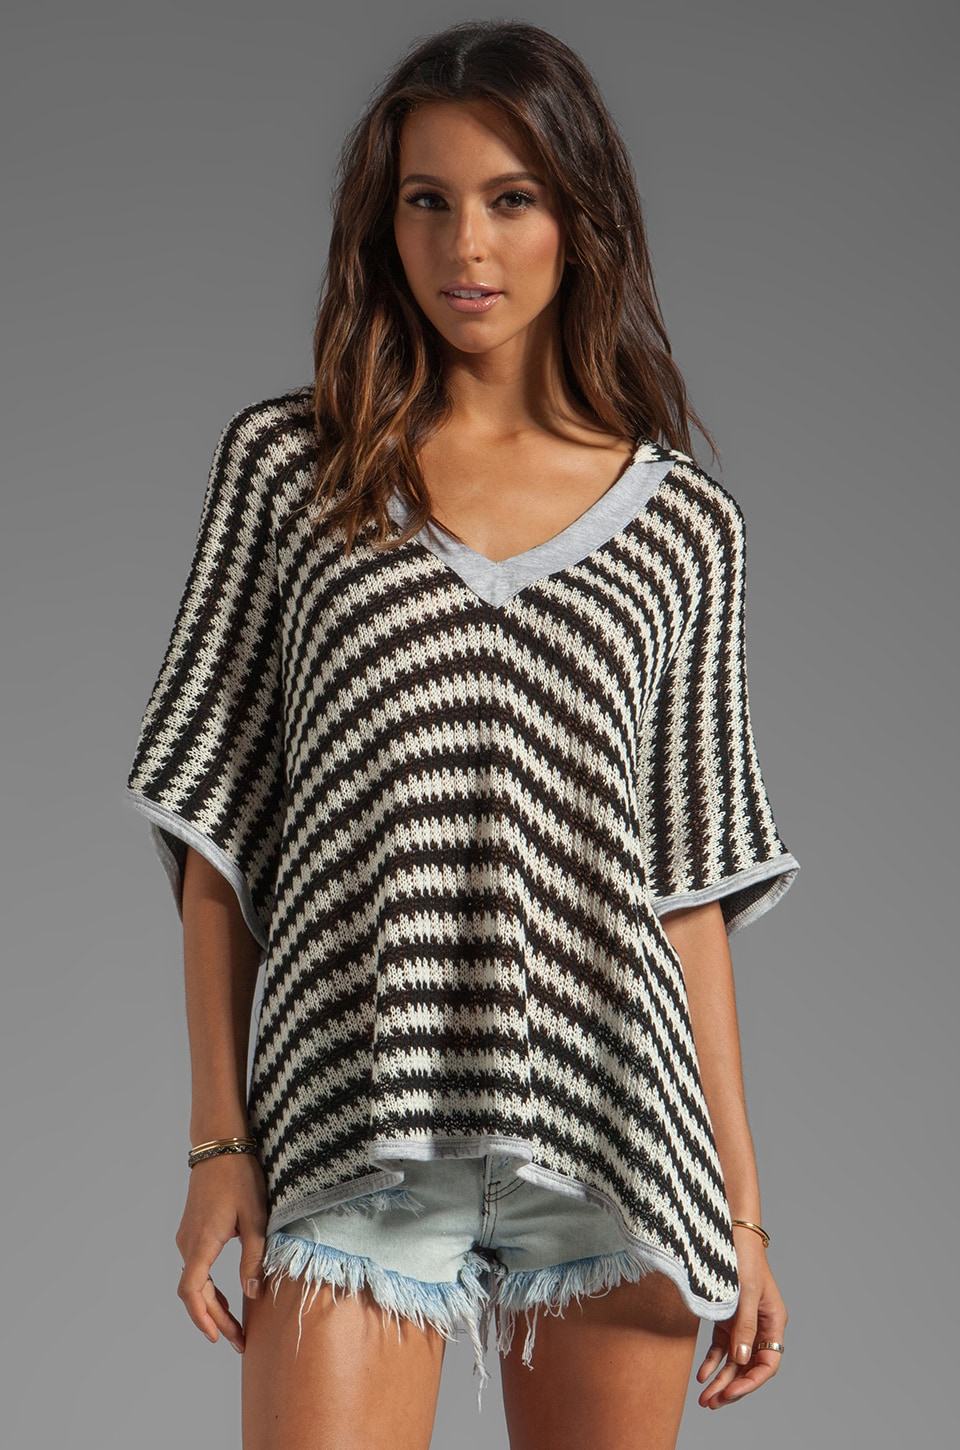 WOODLEIGH Ziena Poncho in Black/Cream